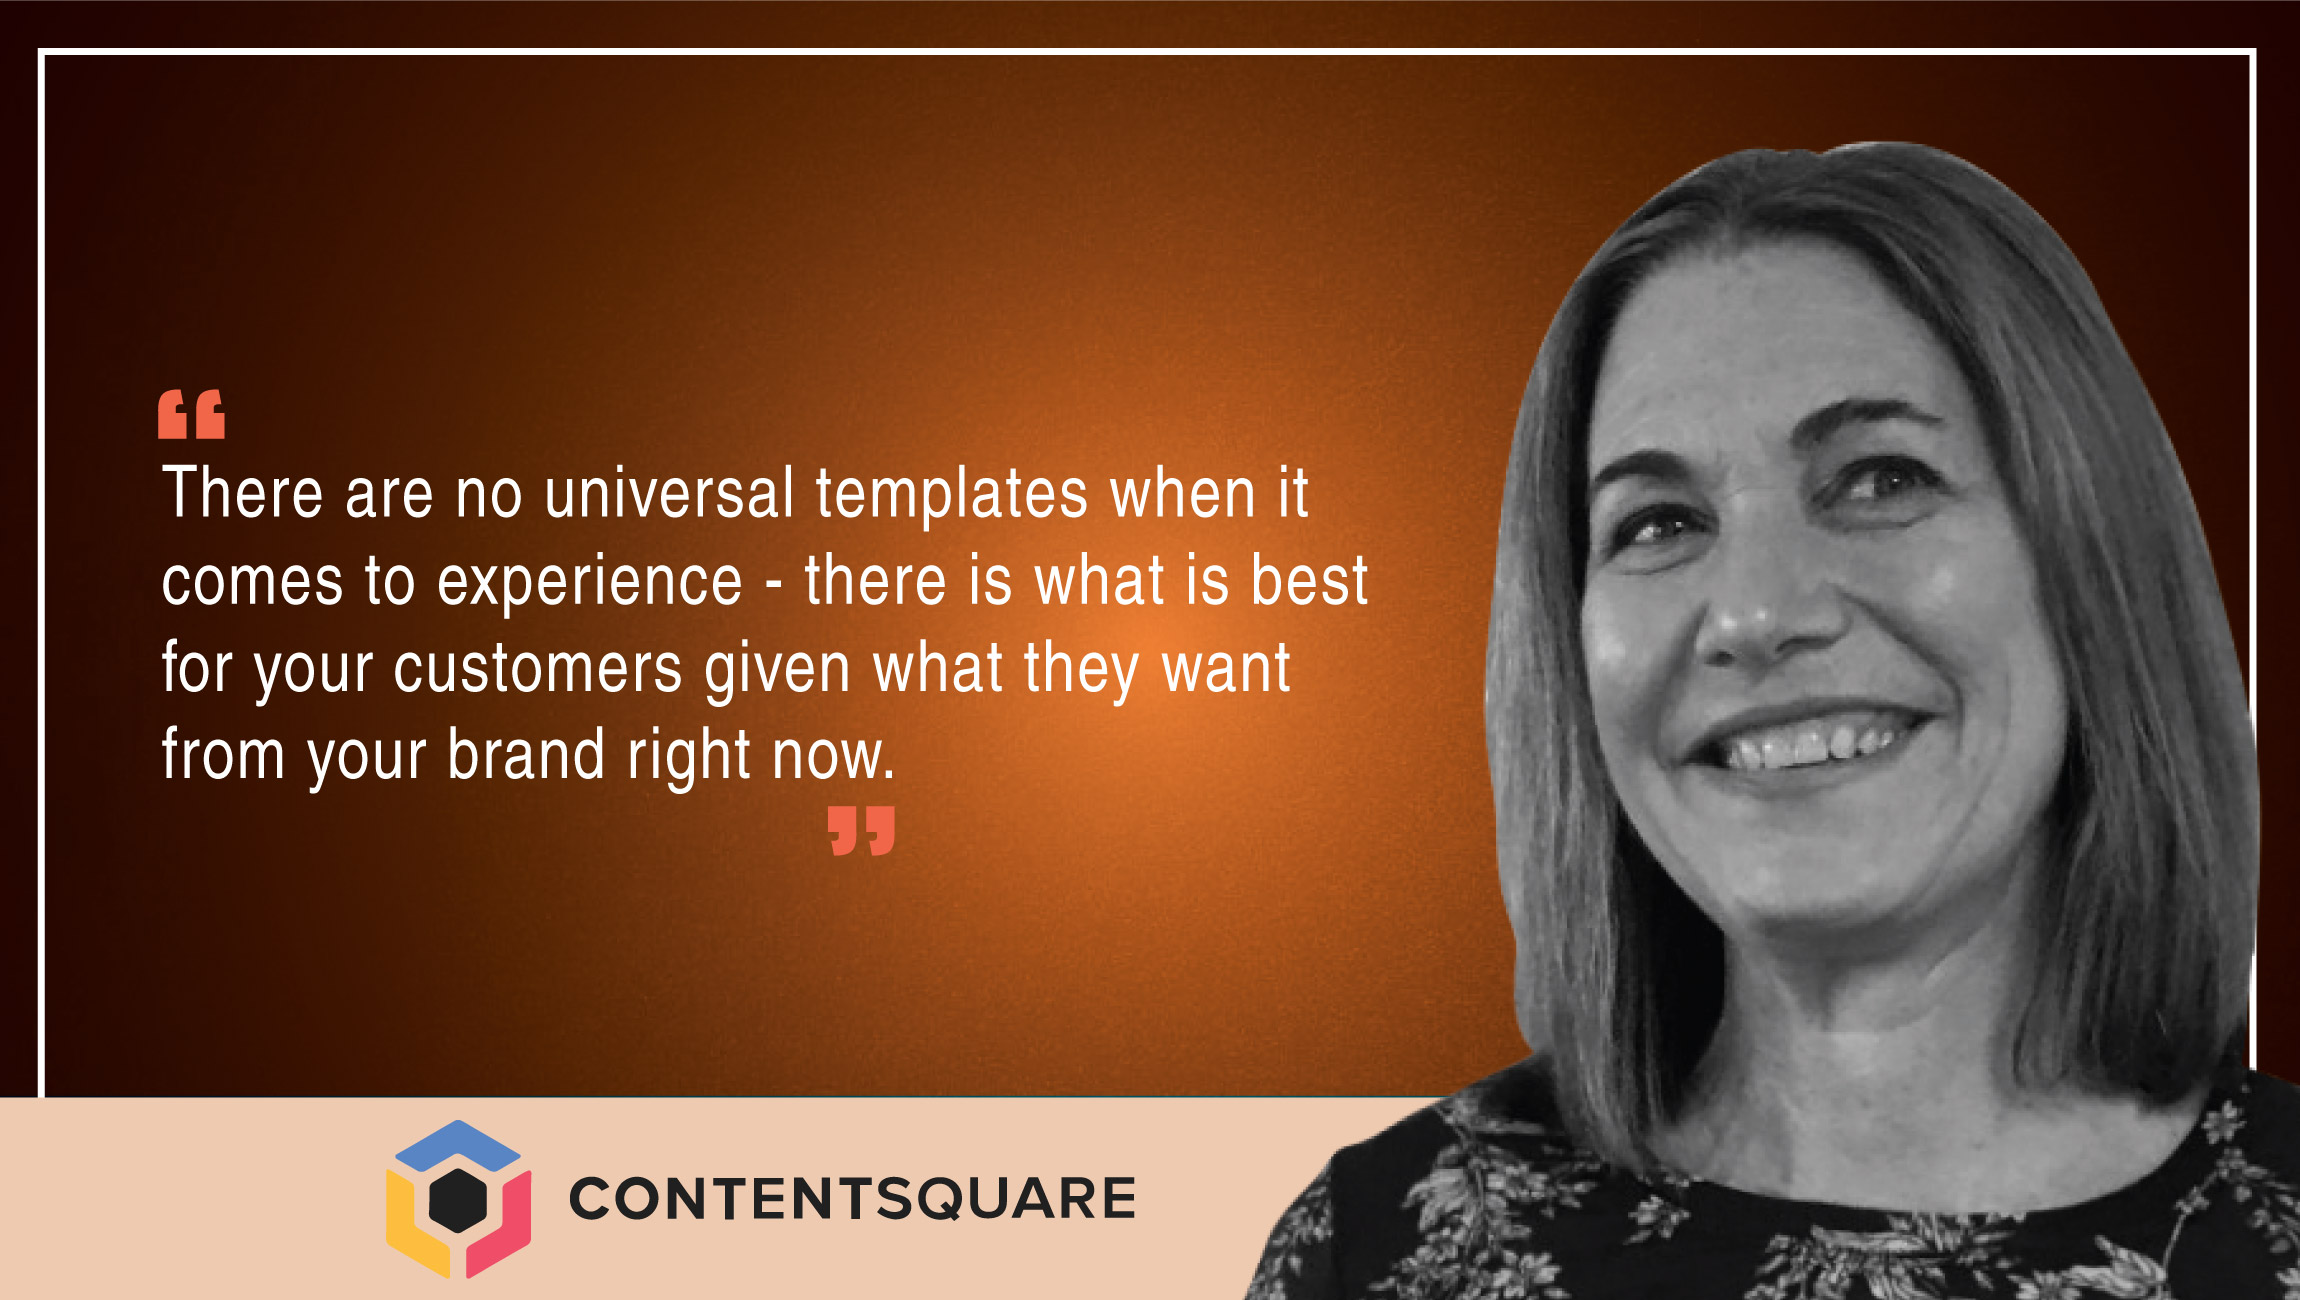 TechBytes with Aimee Stone Munsell, CMO at Contentsquare